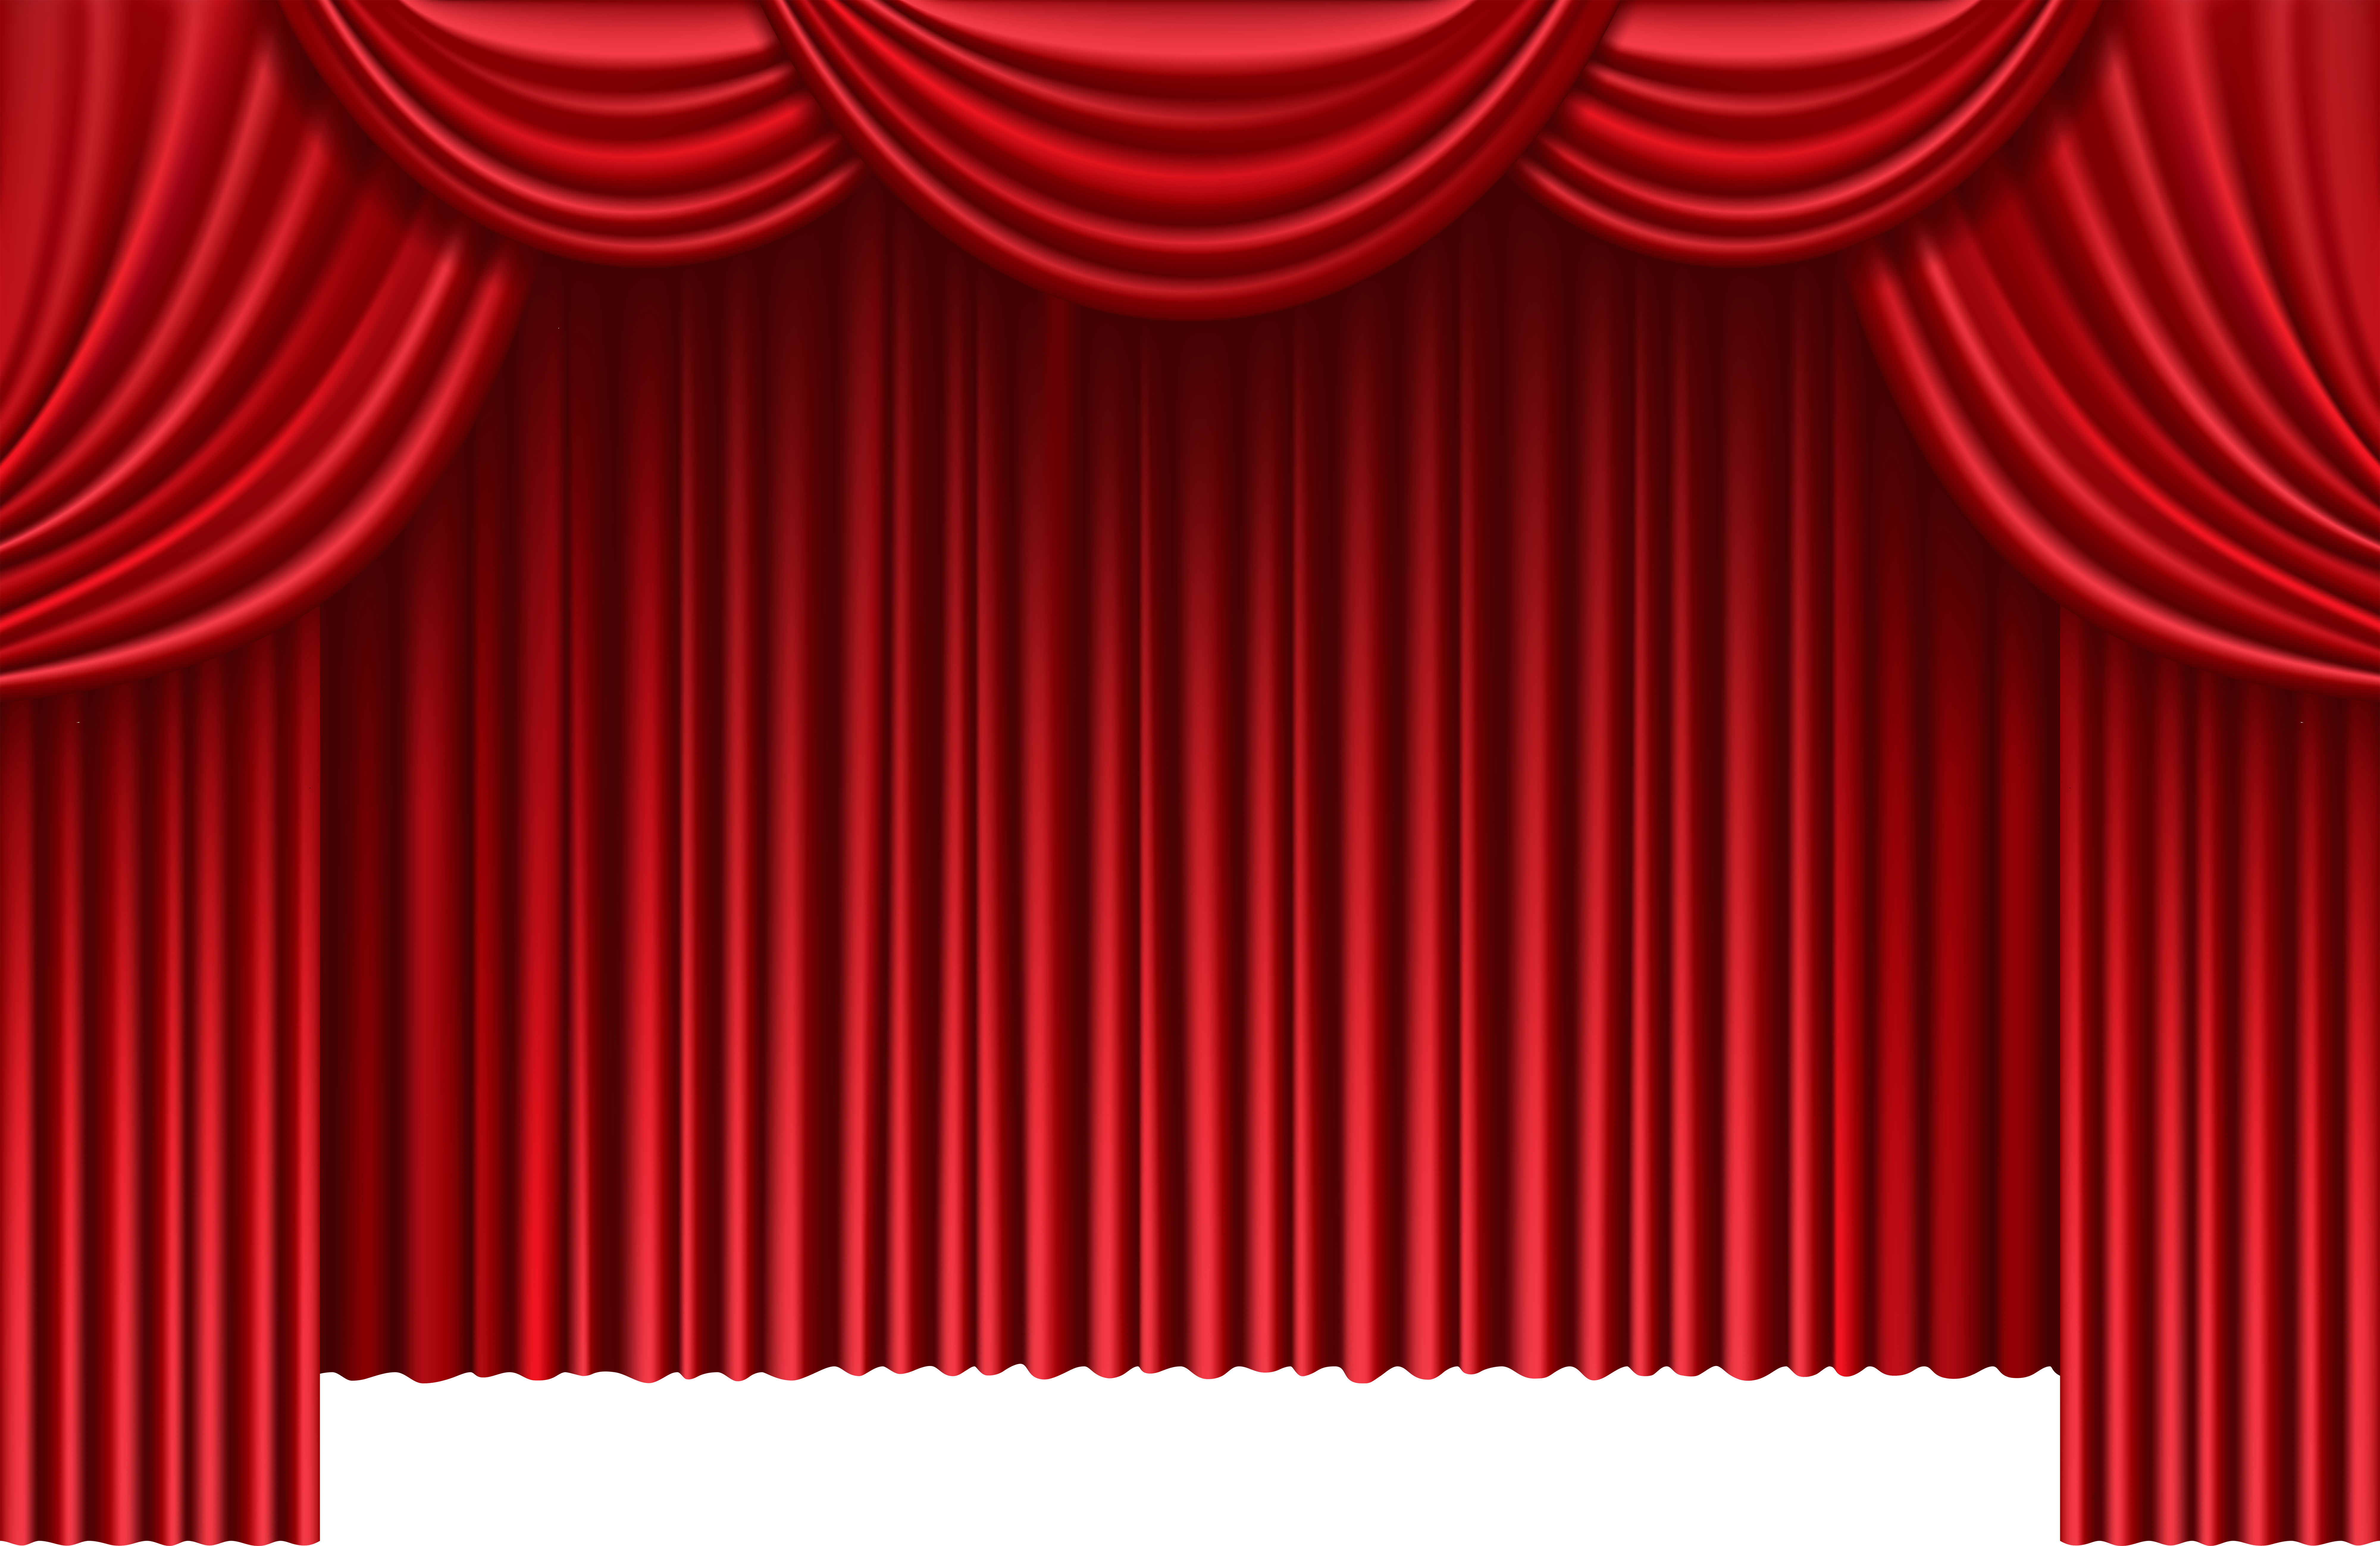 Curtains clipart big red. Theater png clip art